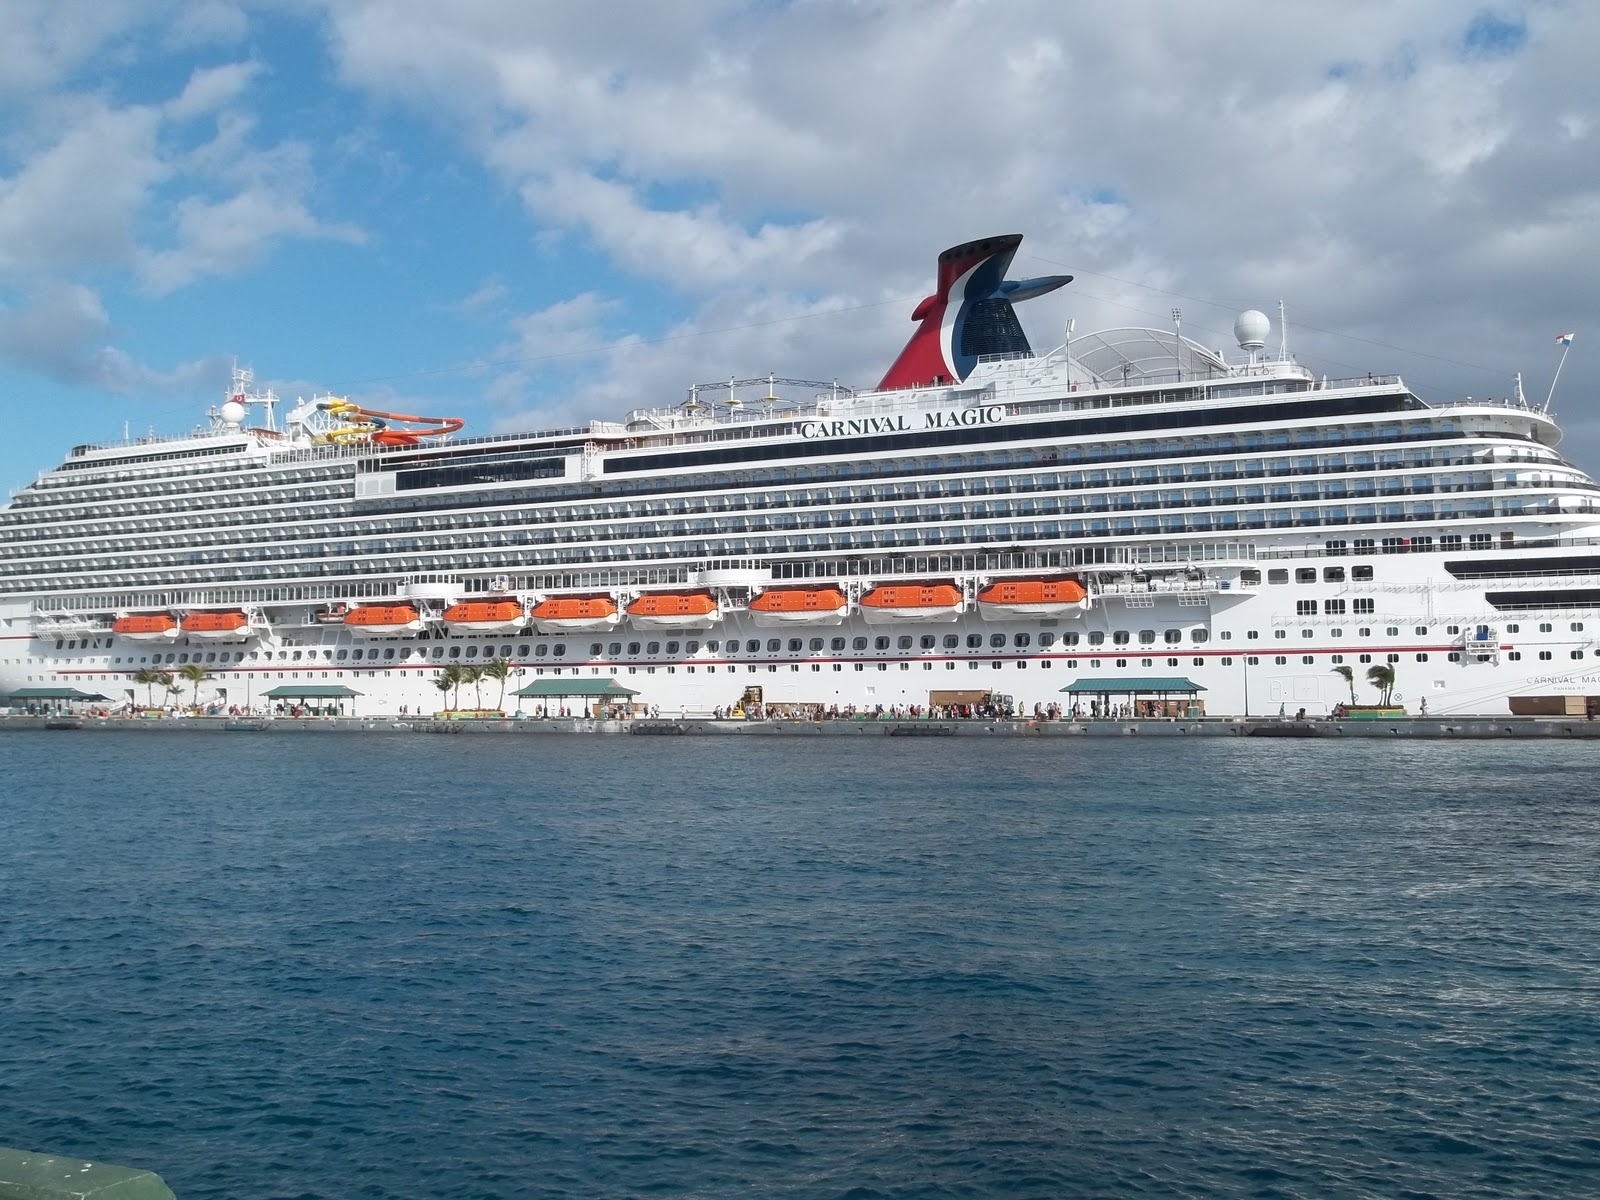 Carnival Magic Cucina Del Capitano Lunch Menu Pick A Place Travel Agency Building Memories One